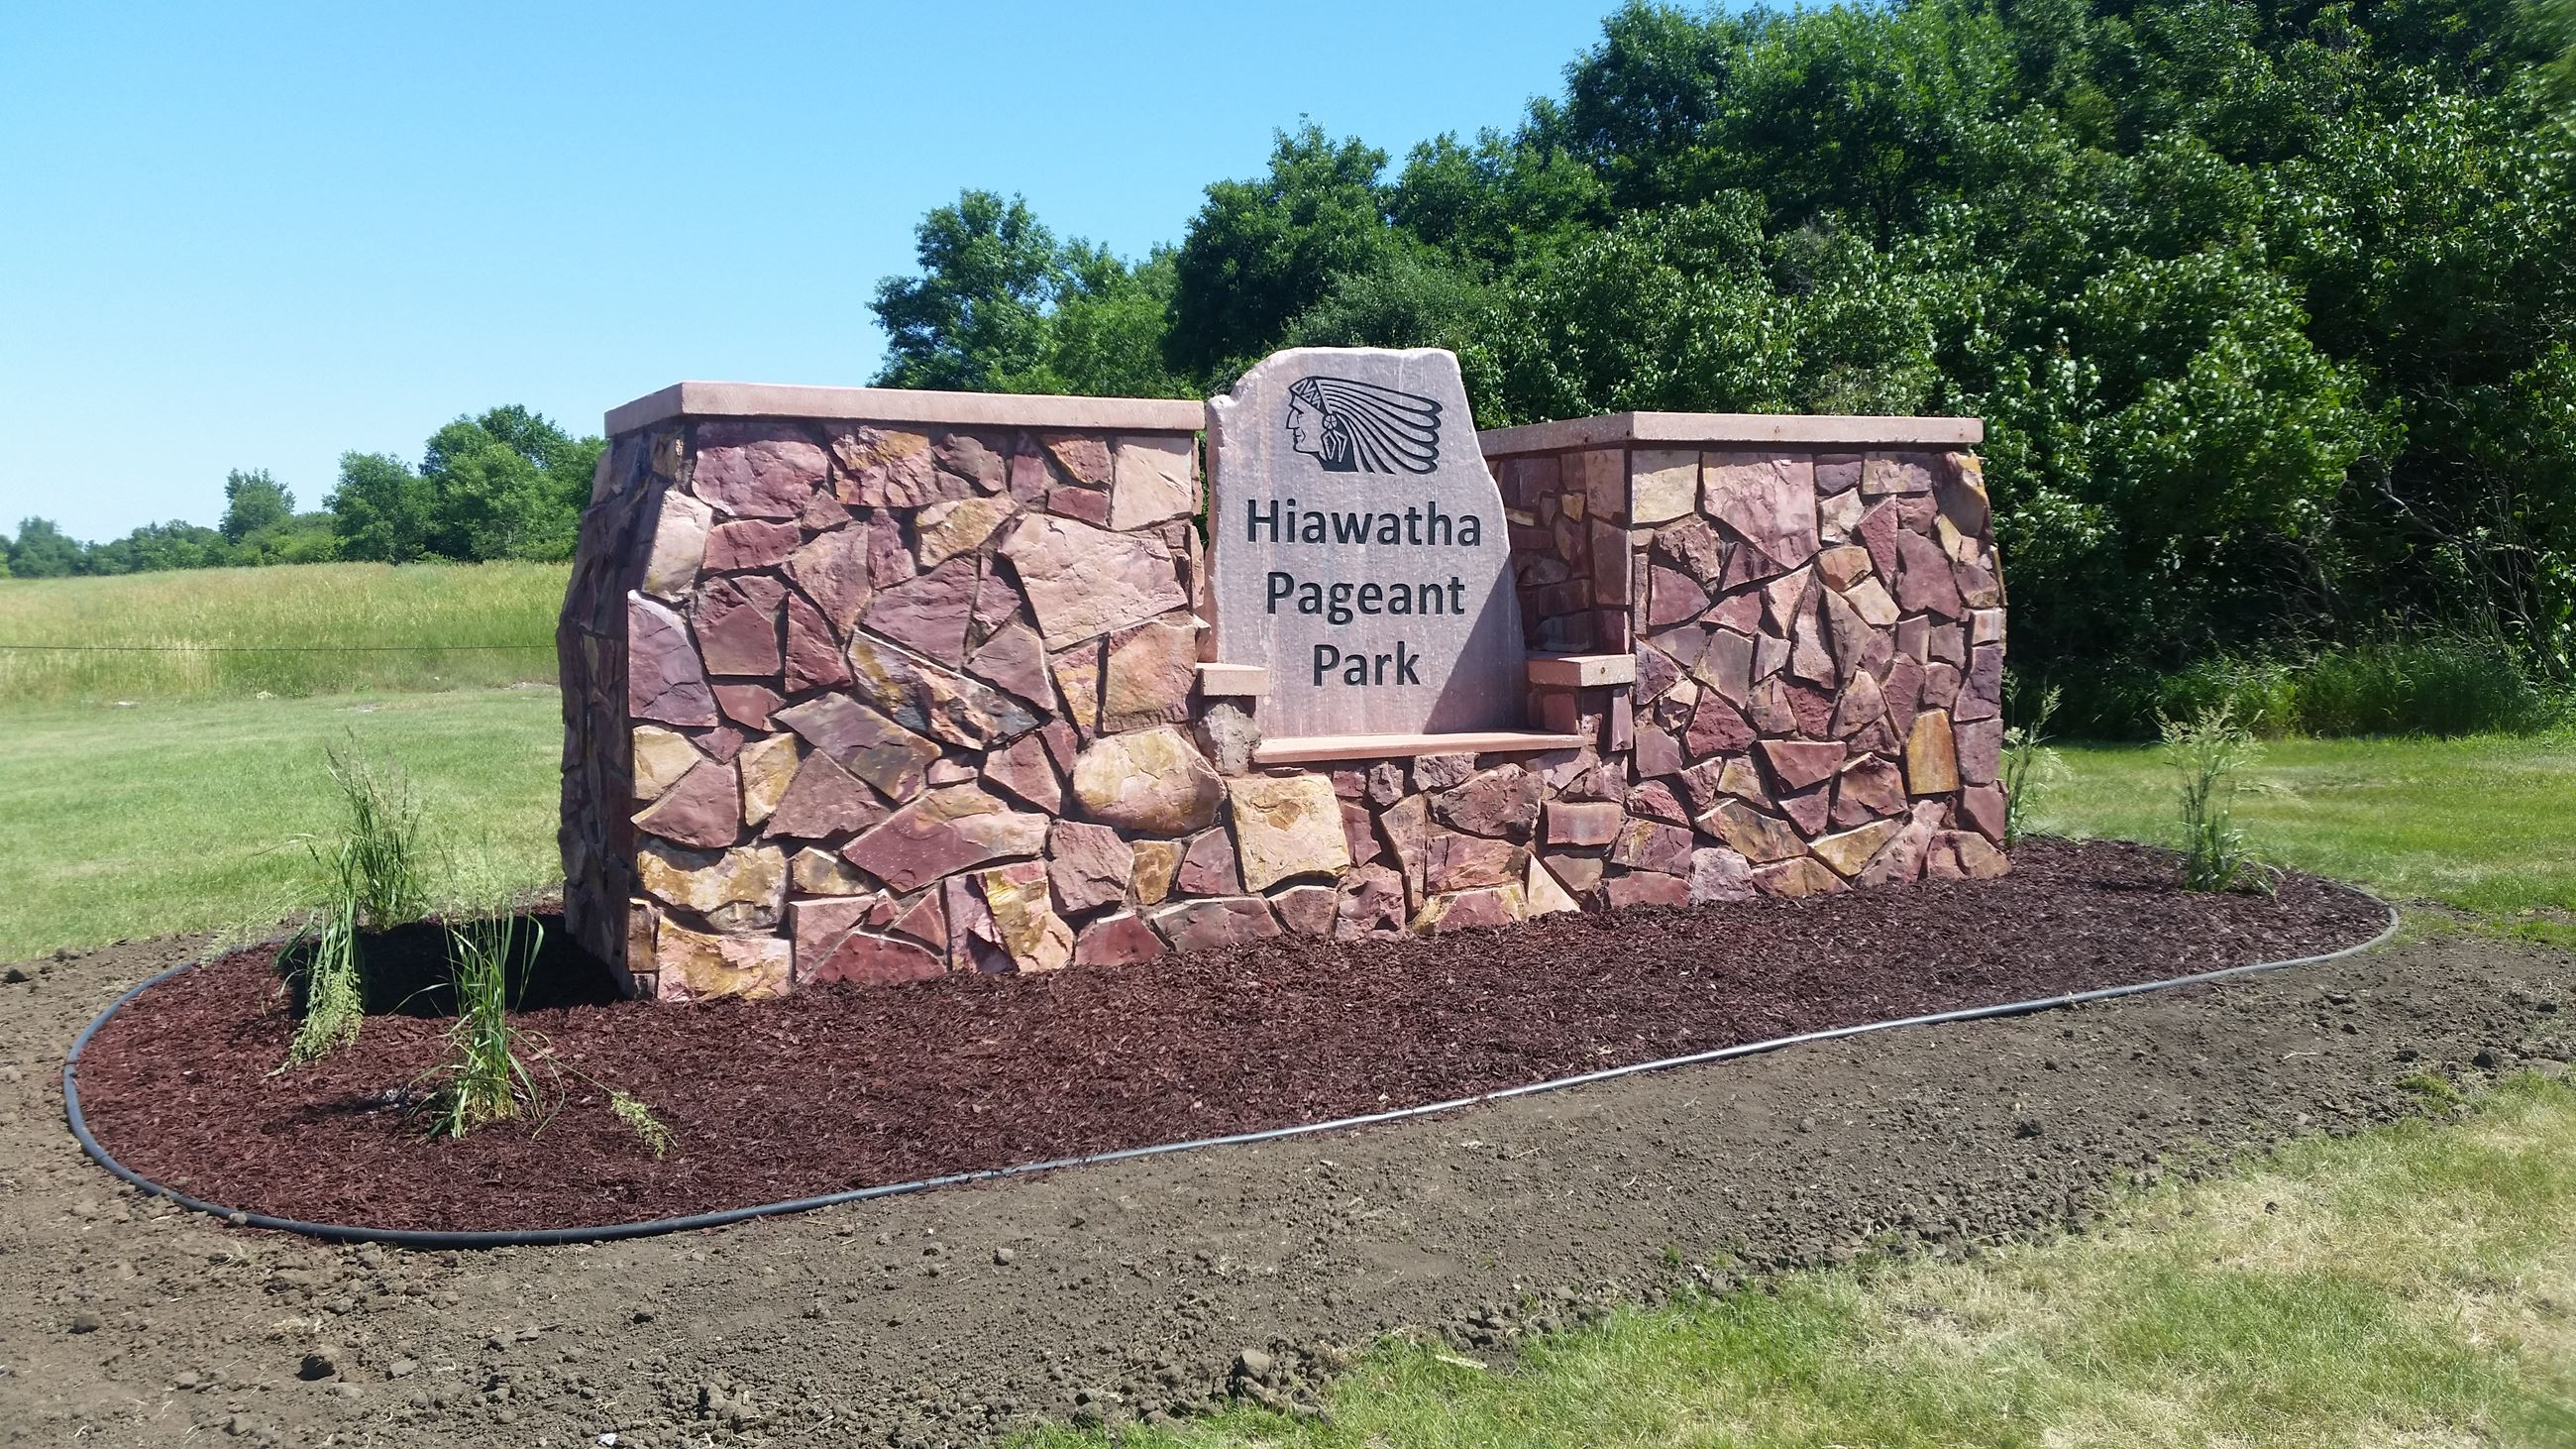 Hiawatha Lodge Entrace Sign